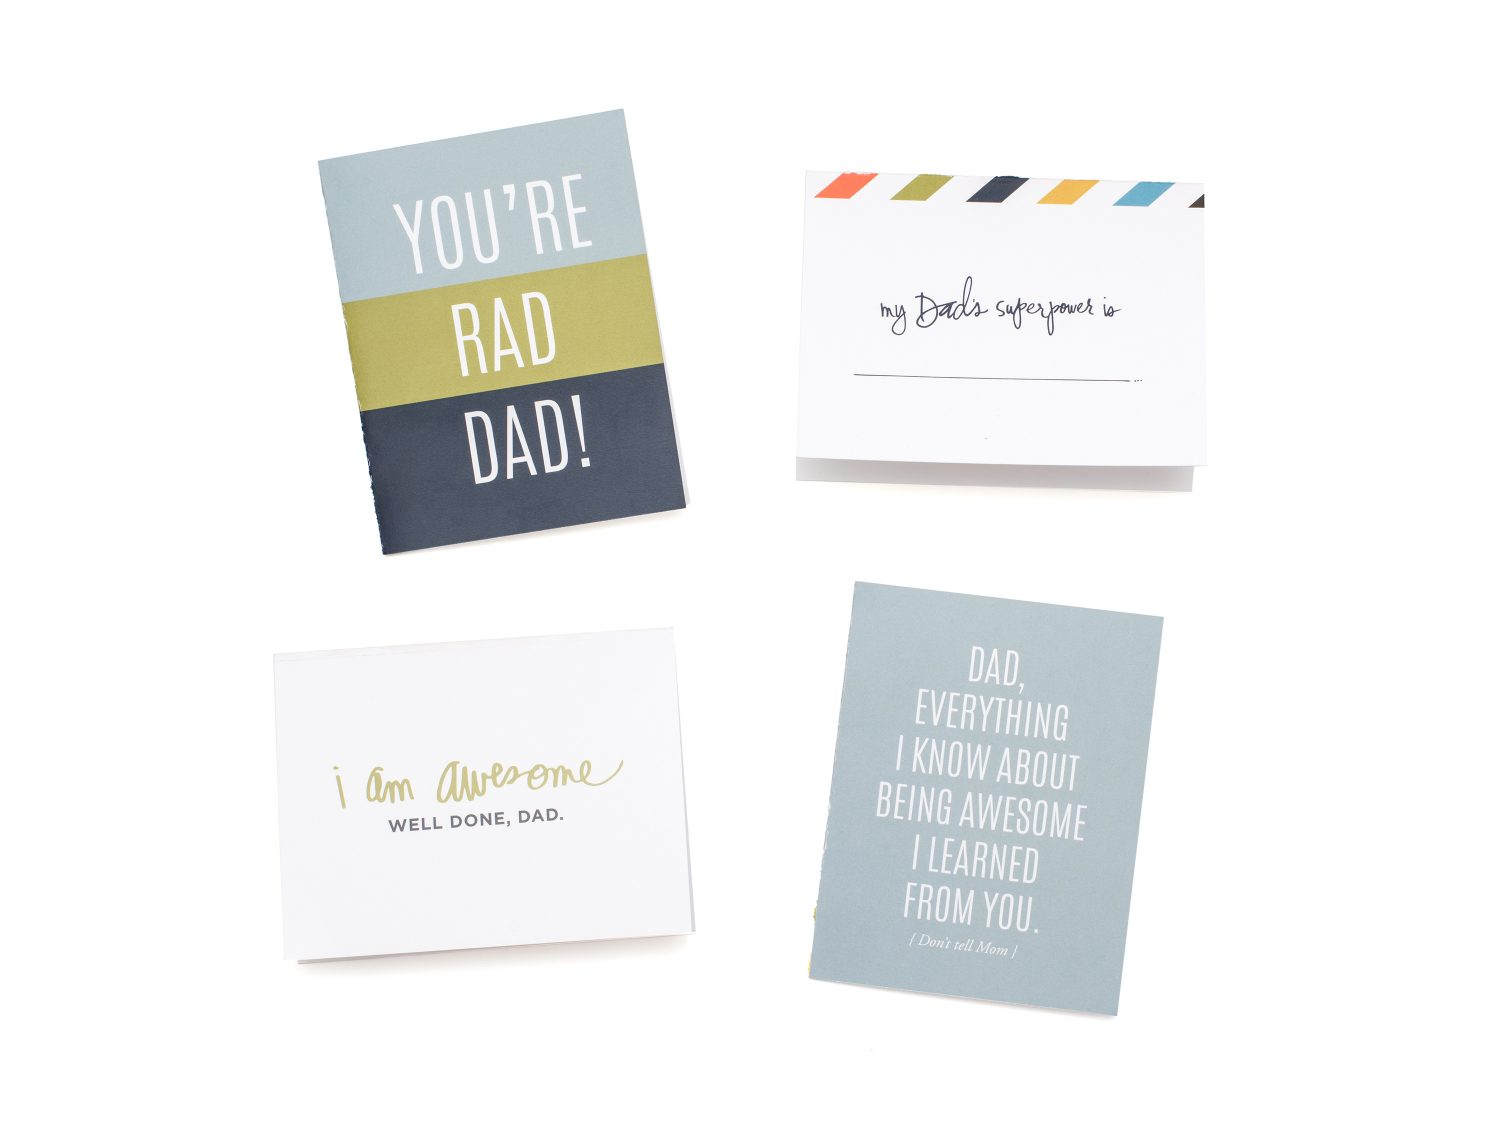 picture about Printable Fathers Day Cards Free named Heidi Swapp Heidi Swapp No cost Printable Fathers Working day Playing cards